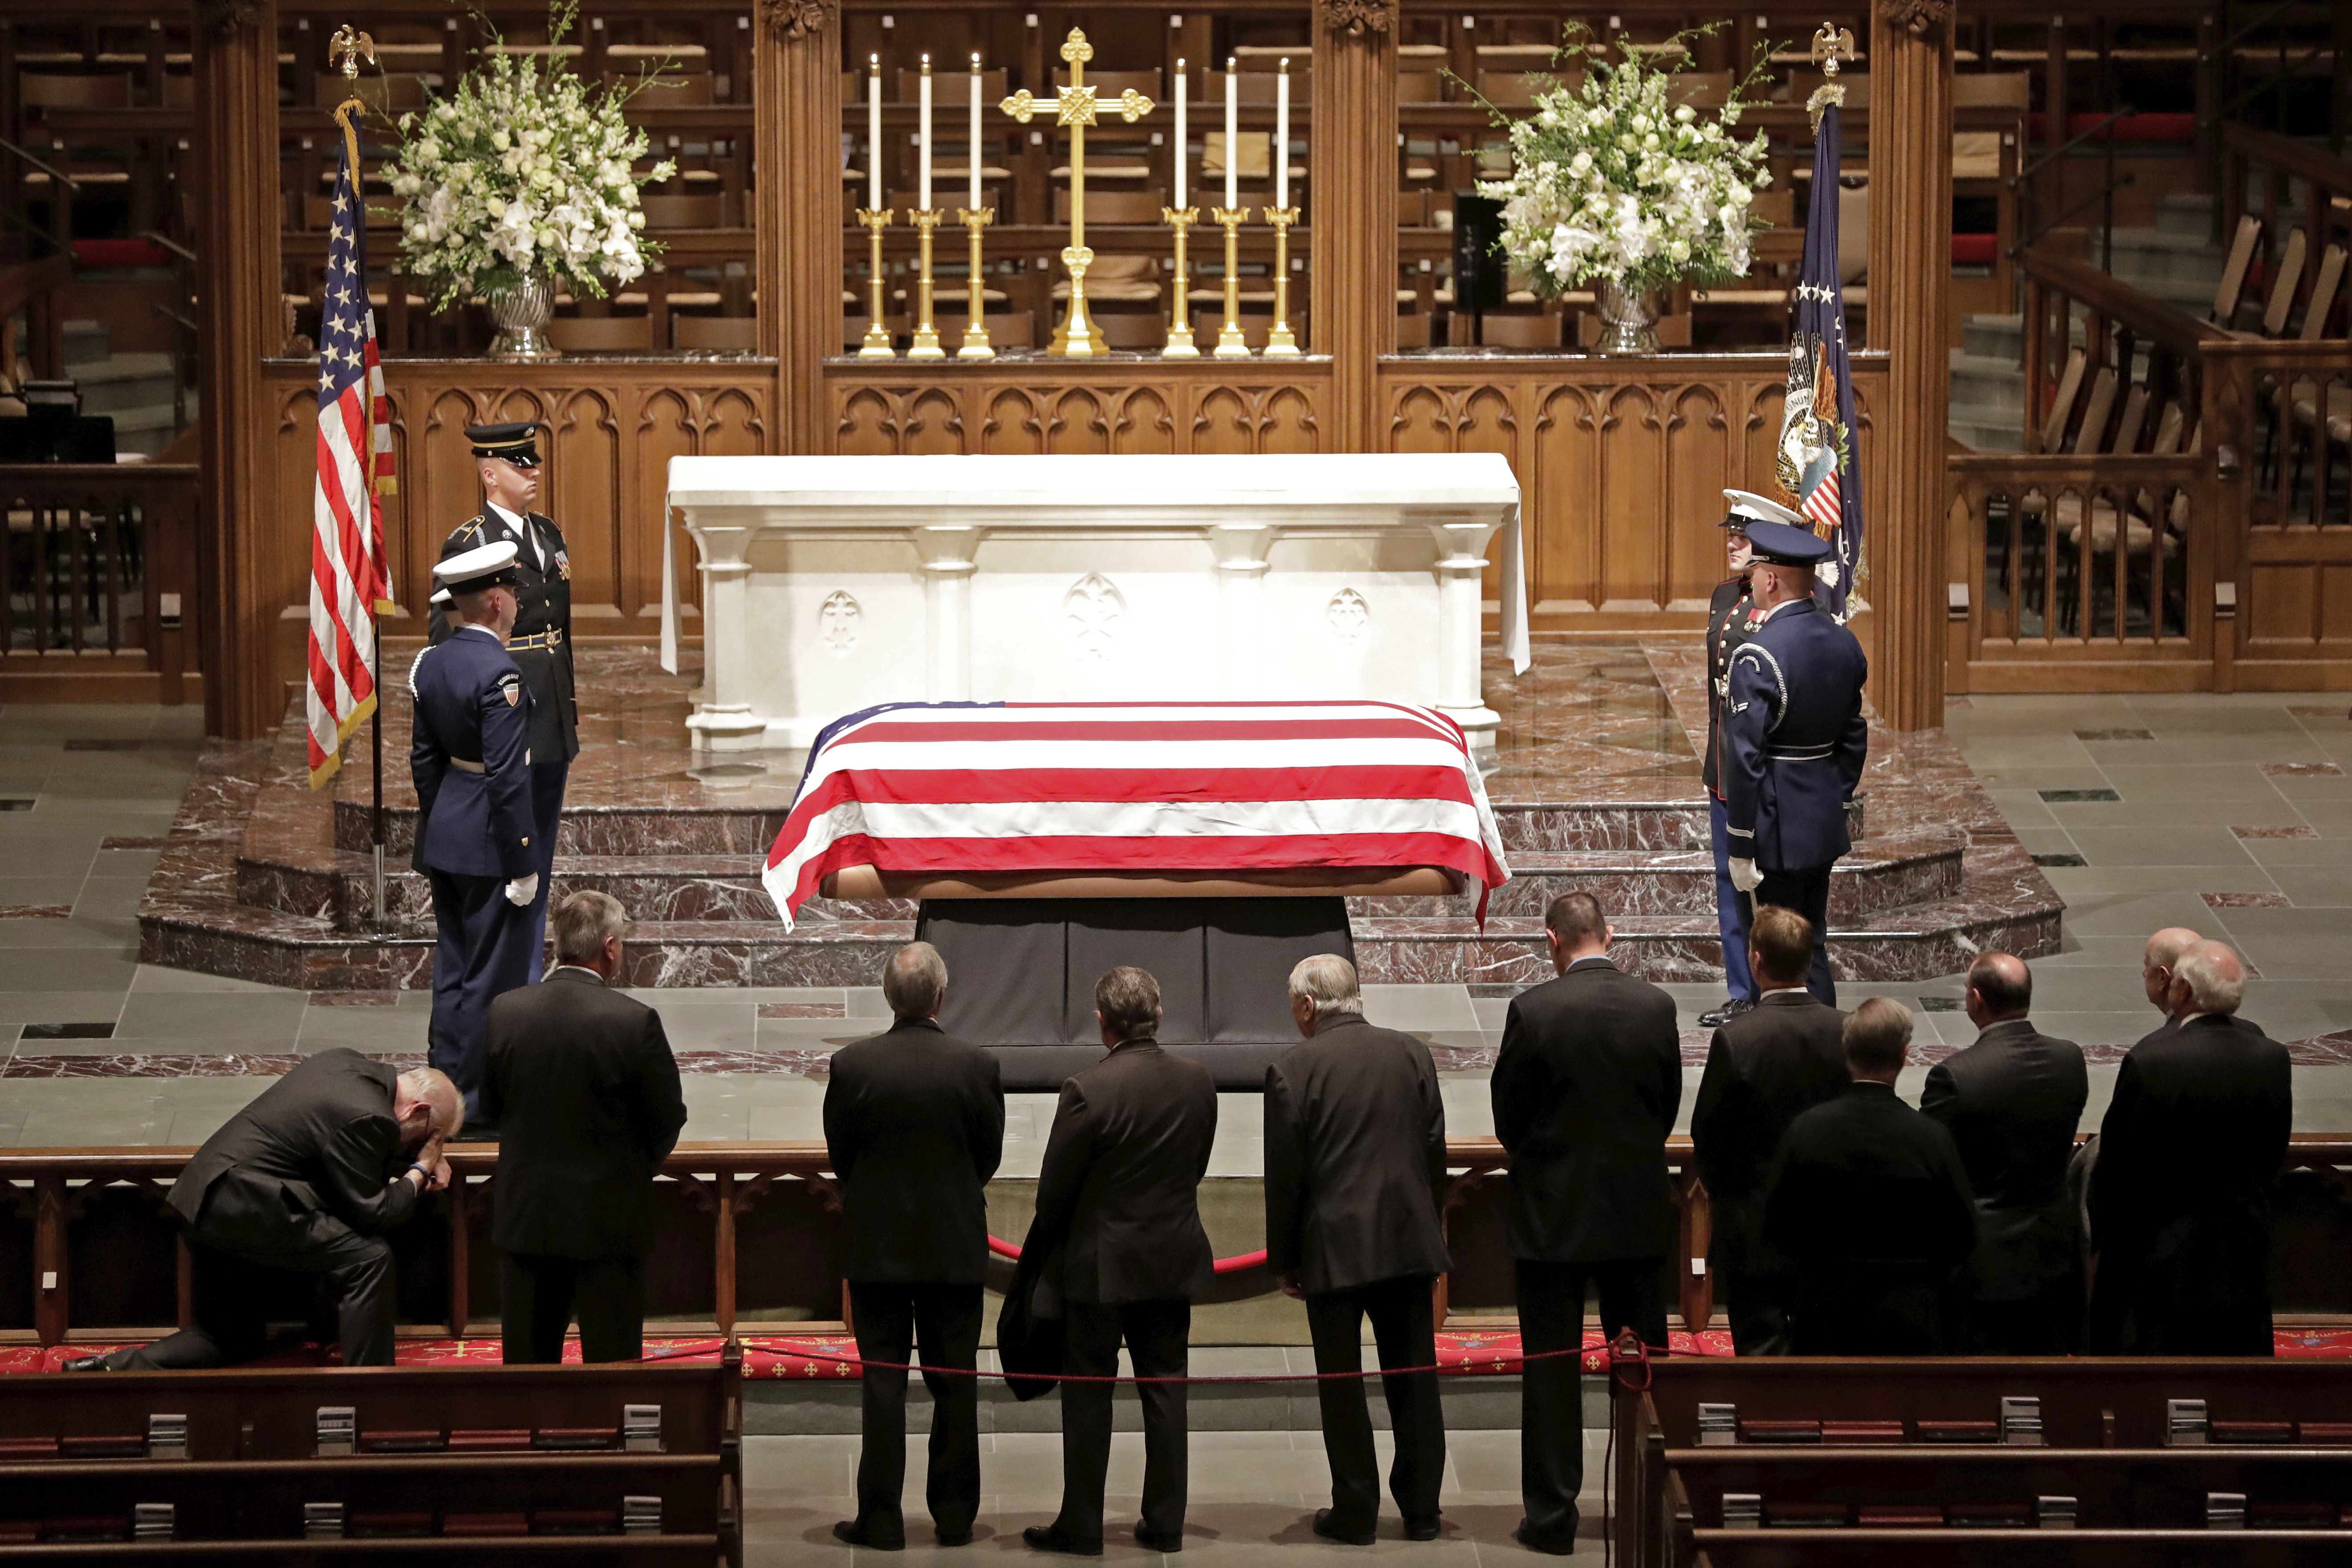 Visitors pay their respects to the flag-draped casket of former President George H.W. Bush at St. Martin's Episcopal Church Wednesday, Dec. 5, 2018, in Houston. (AP Photo/Mark Humphrey)